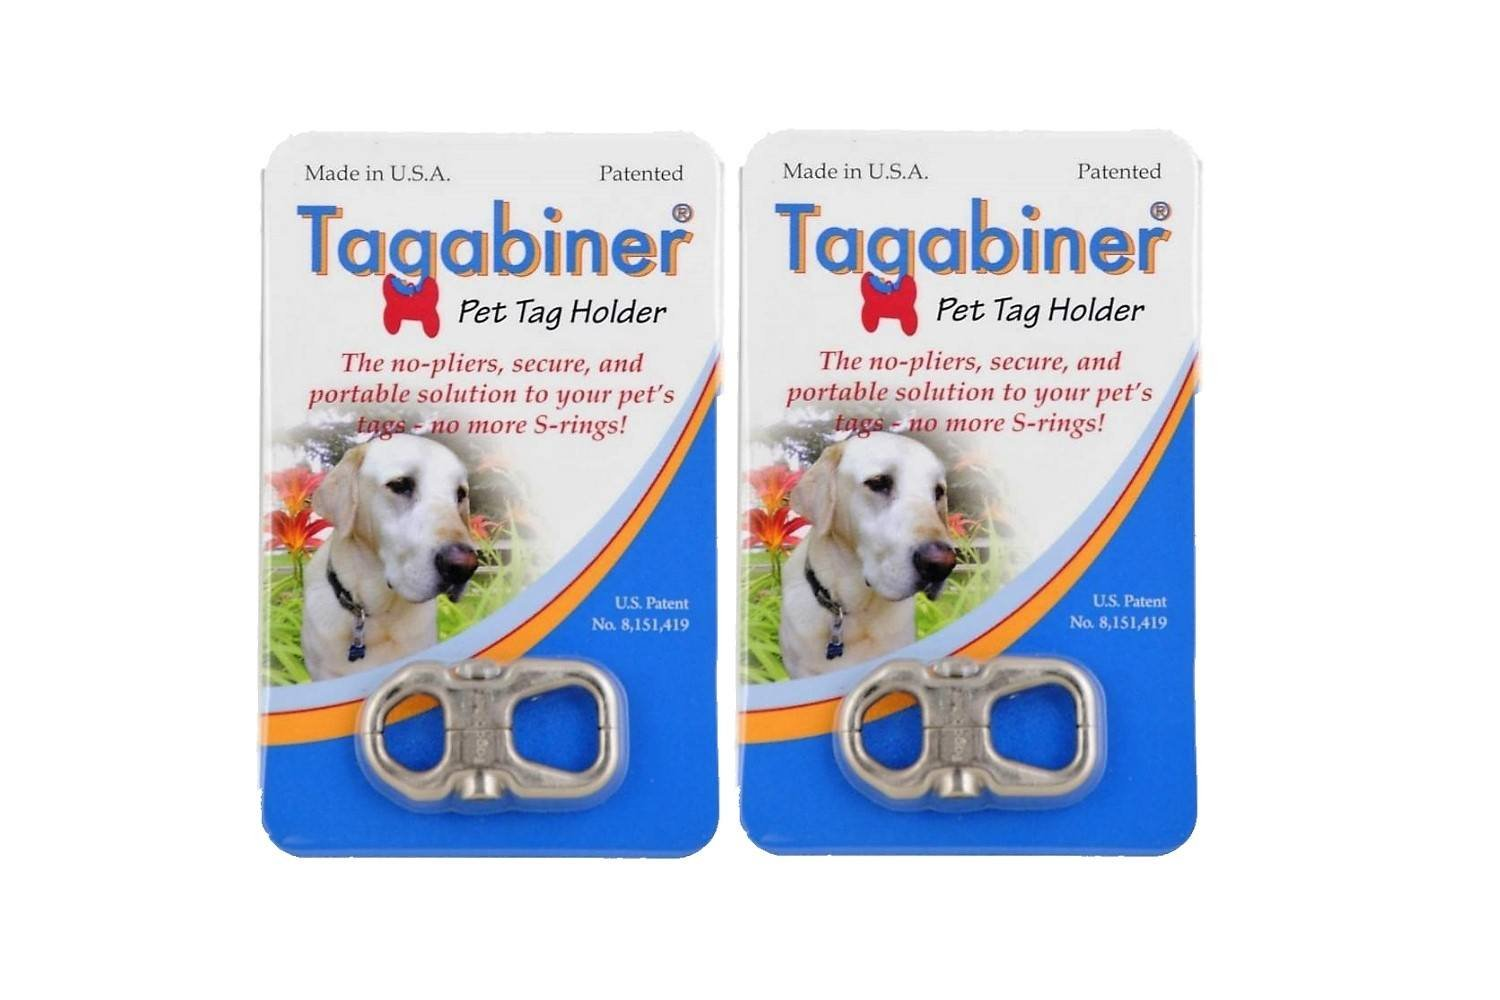 Tagabiner The New Pet Tag Holder, Secure and Portable Solution to your Pet's Tags (2 Pack)